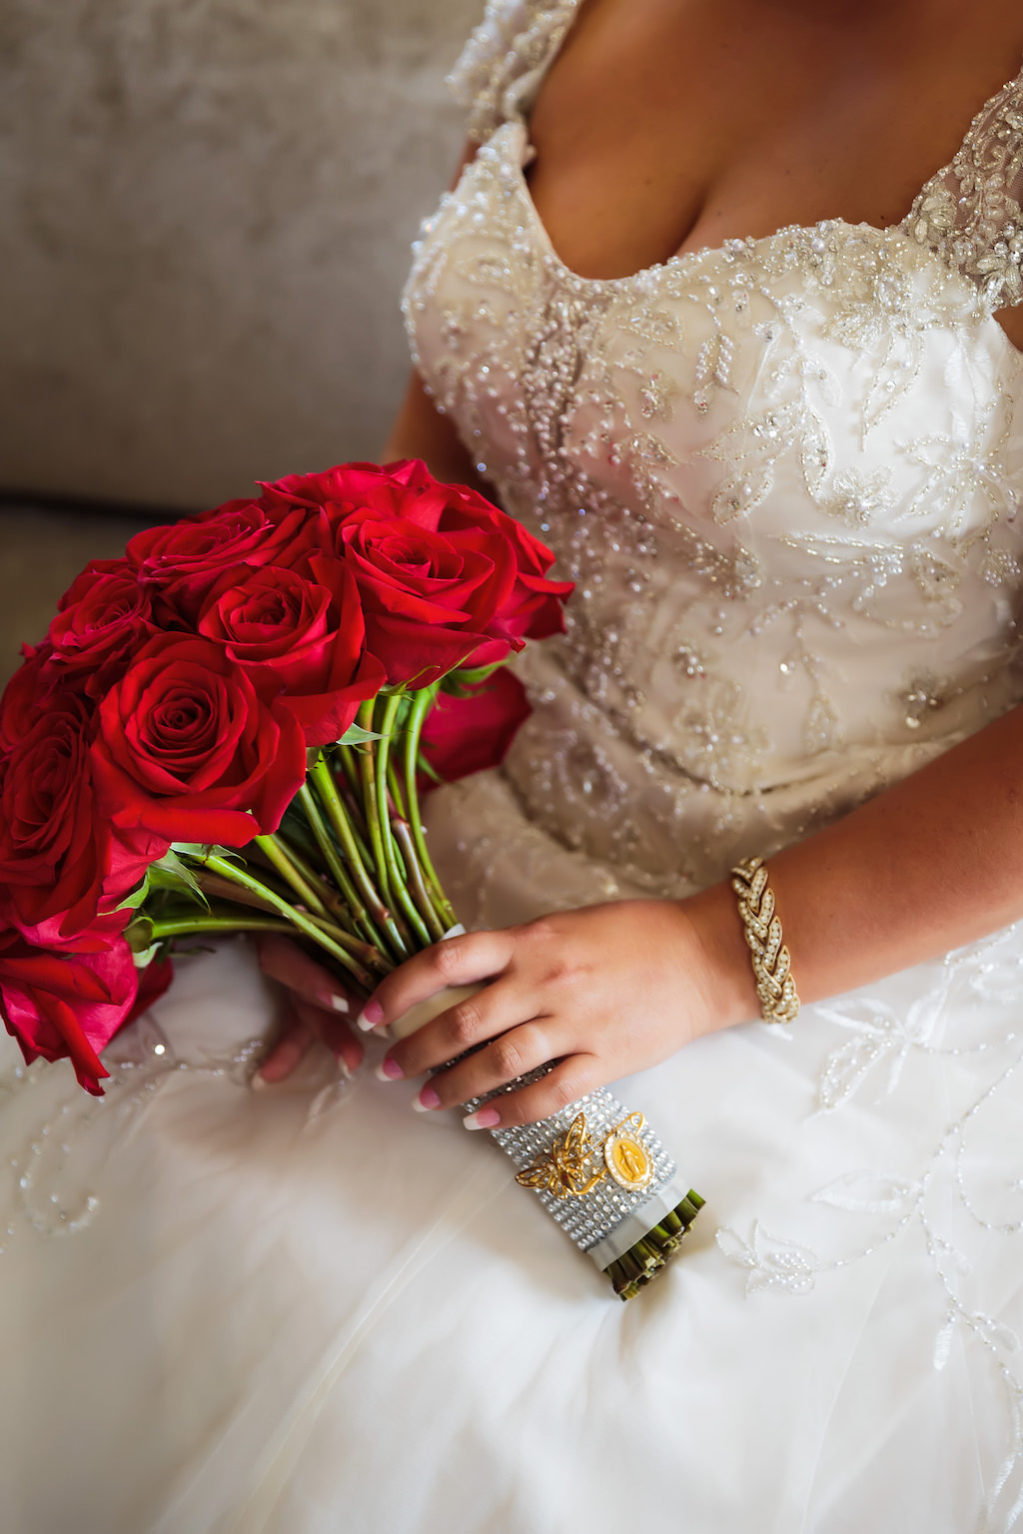 Sweetheart Cut Wedding Dress with Lace Sleeves and Red Rose Wedding Bouquet | Tampa Bay Bridal Shop Truly Forever Bridal